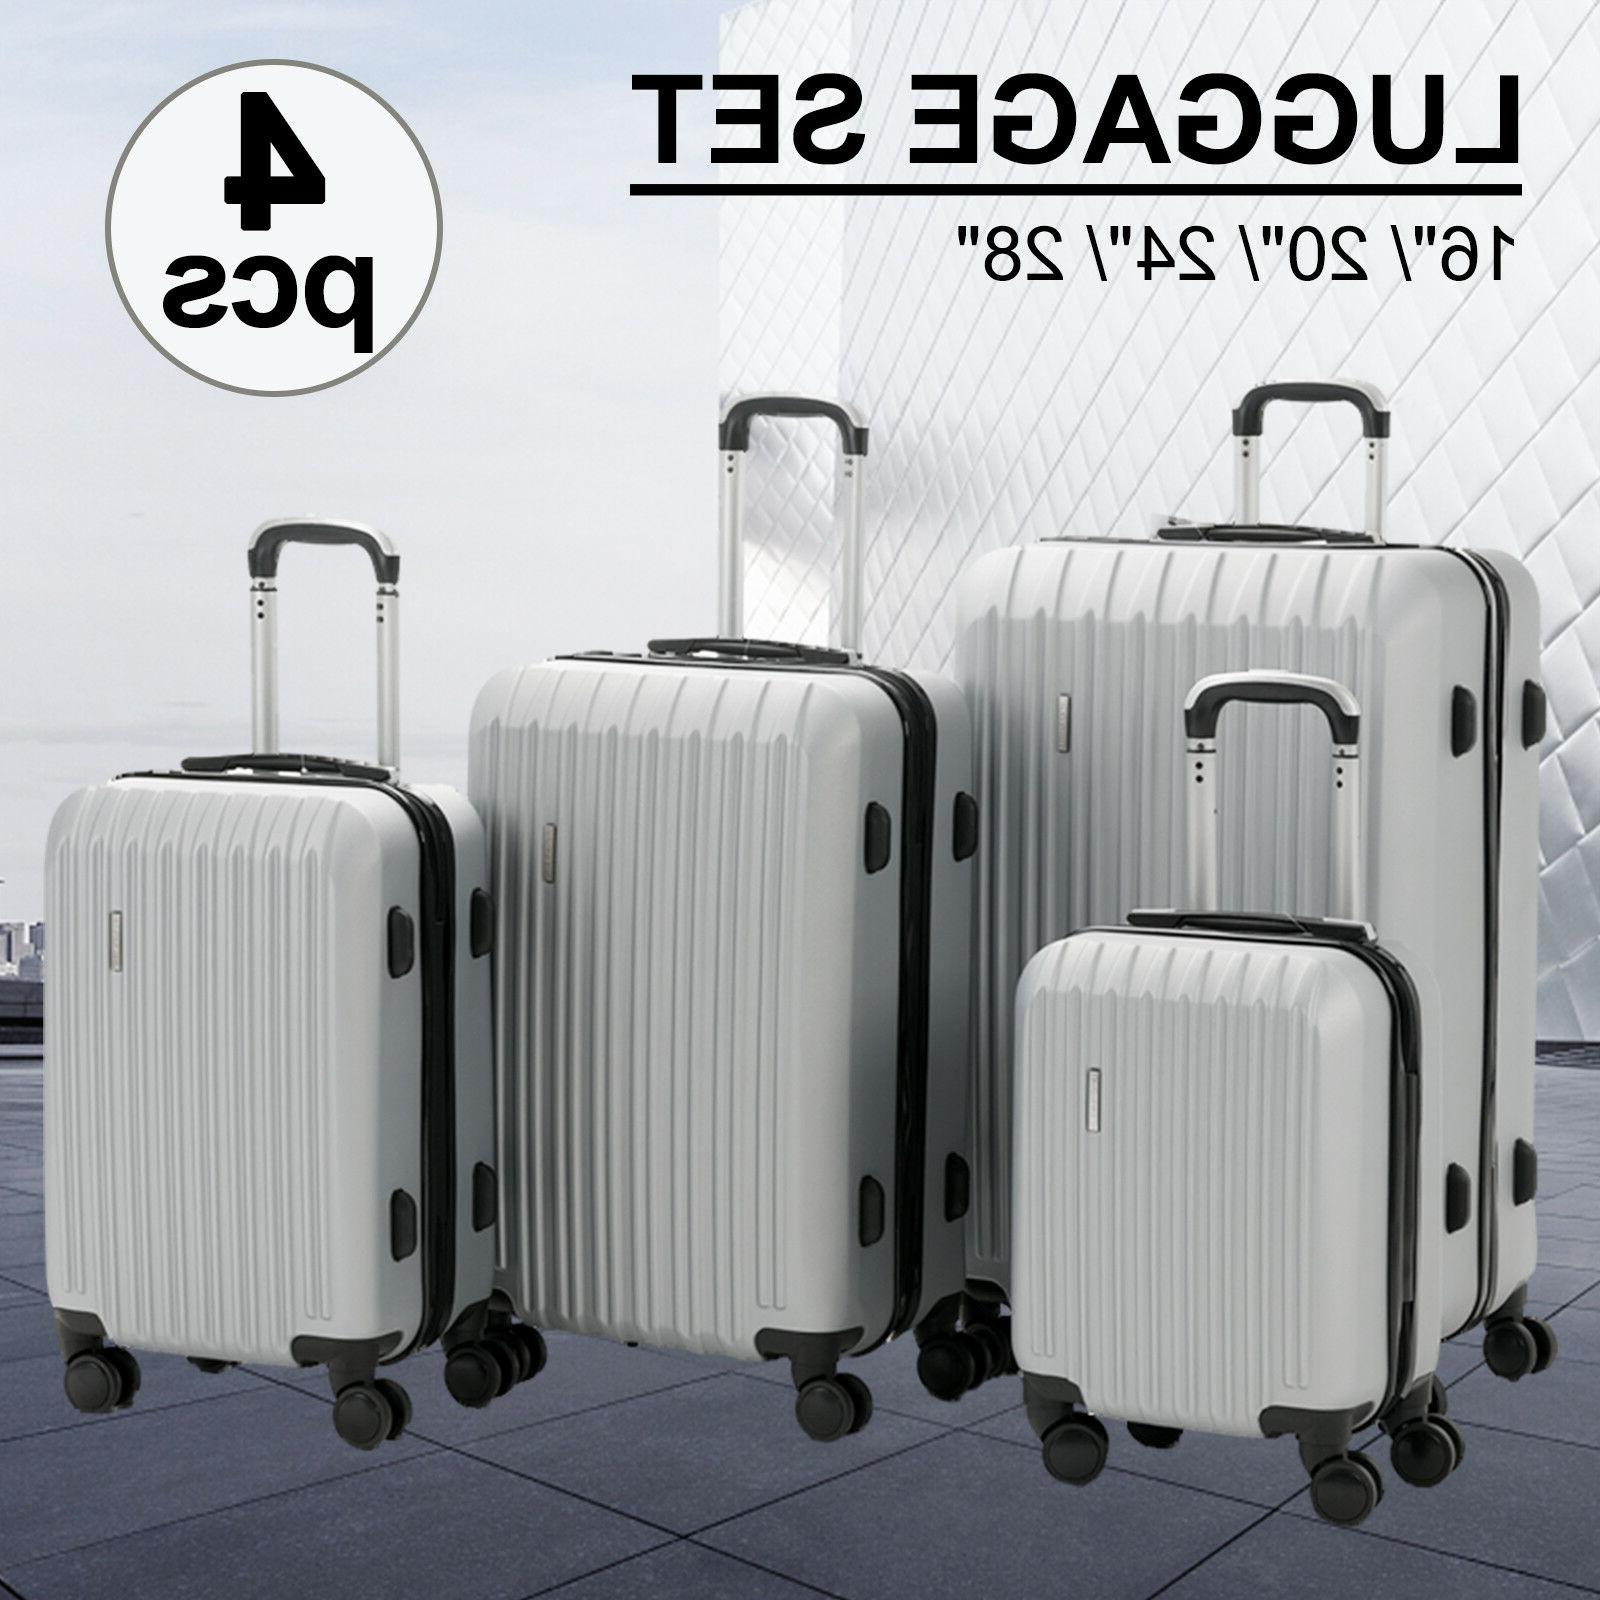 "16/20/24/28"" Luggage Travel with Trolley Carry On Suitcase"